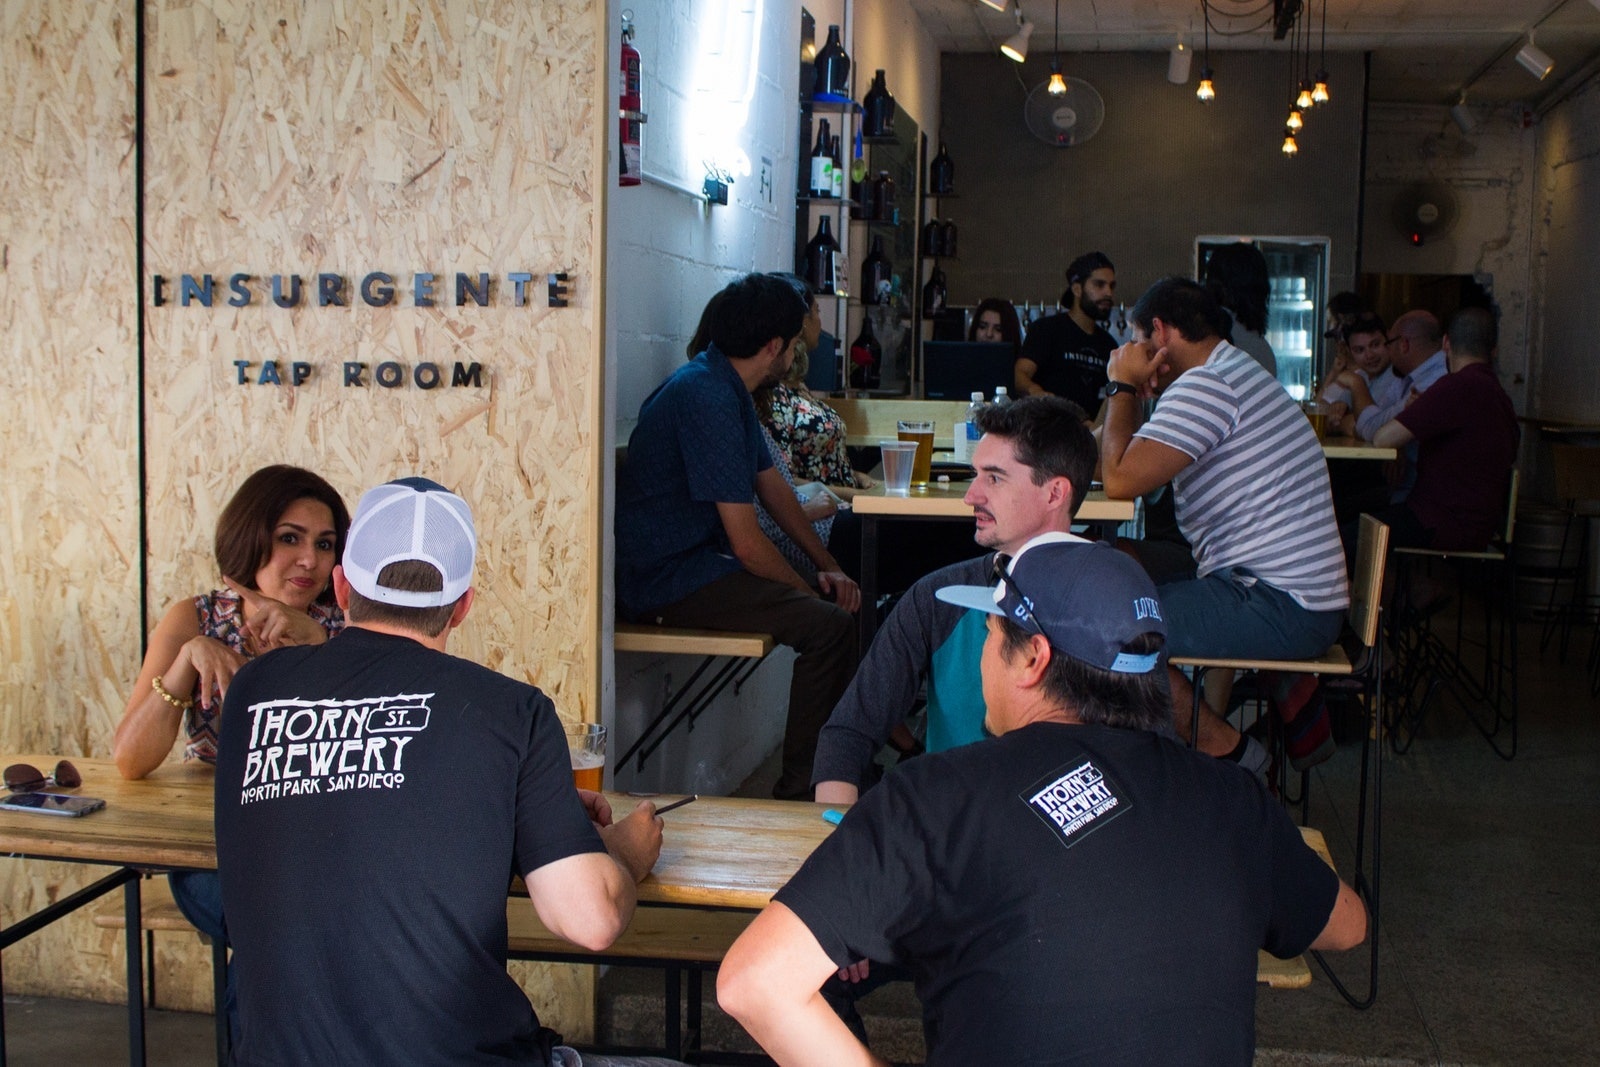 Tap room of Cevecería Insurgente